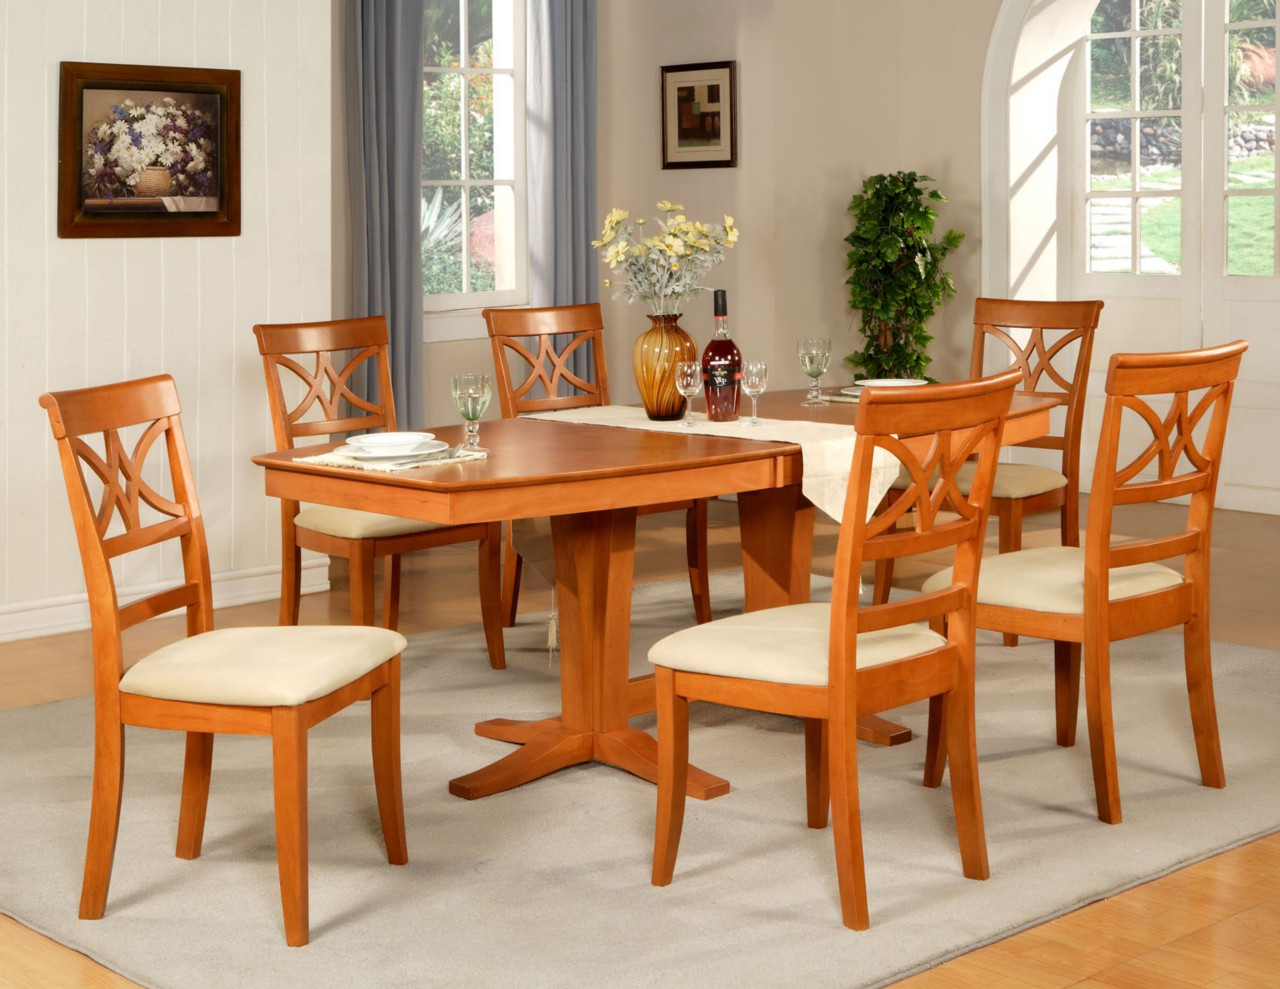 7PC DINING ROOM SET TABLE AND 6 WOOD SEAT CHAIRS IN LIGHT CHERRY FINISH